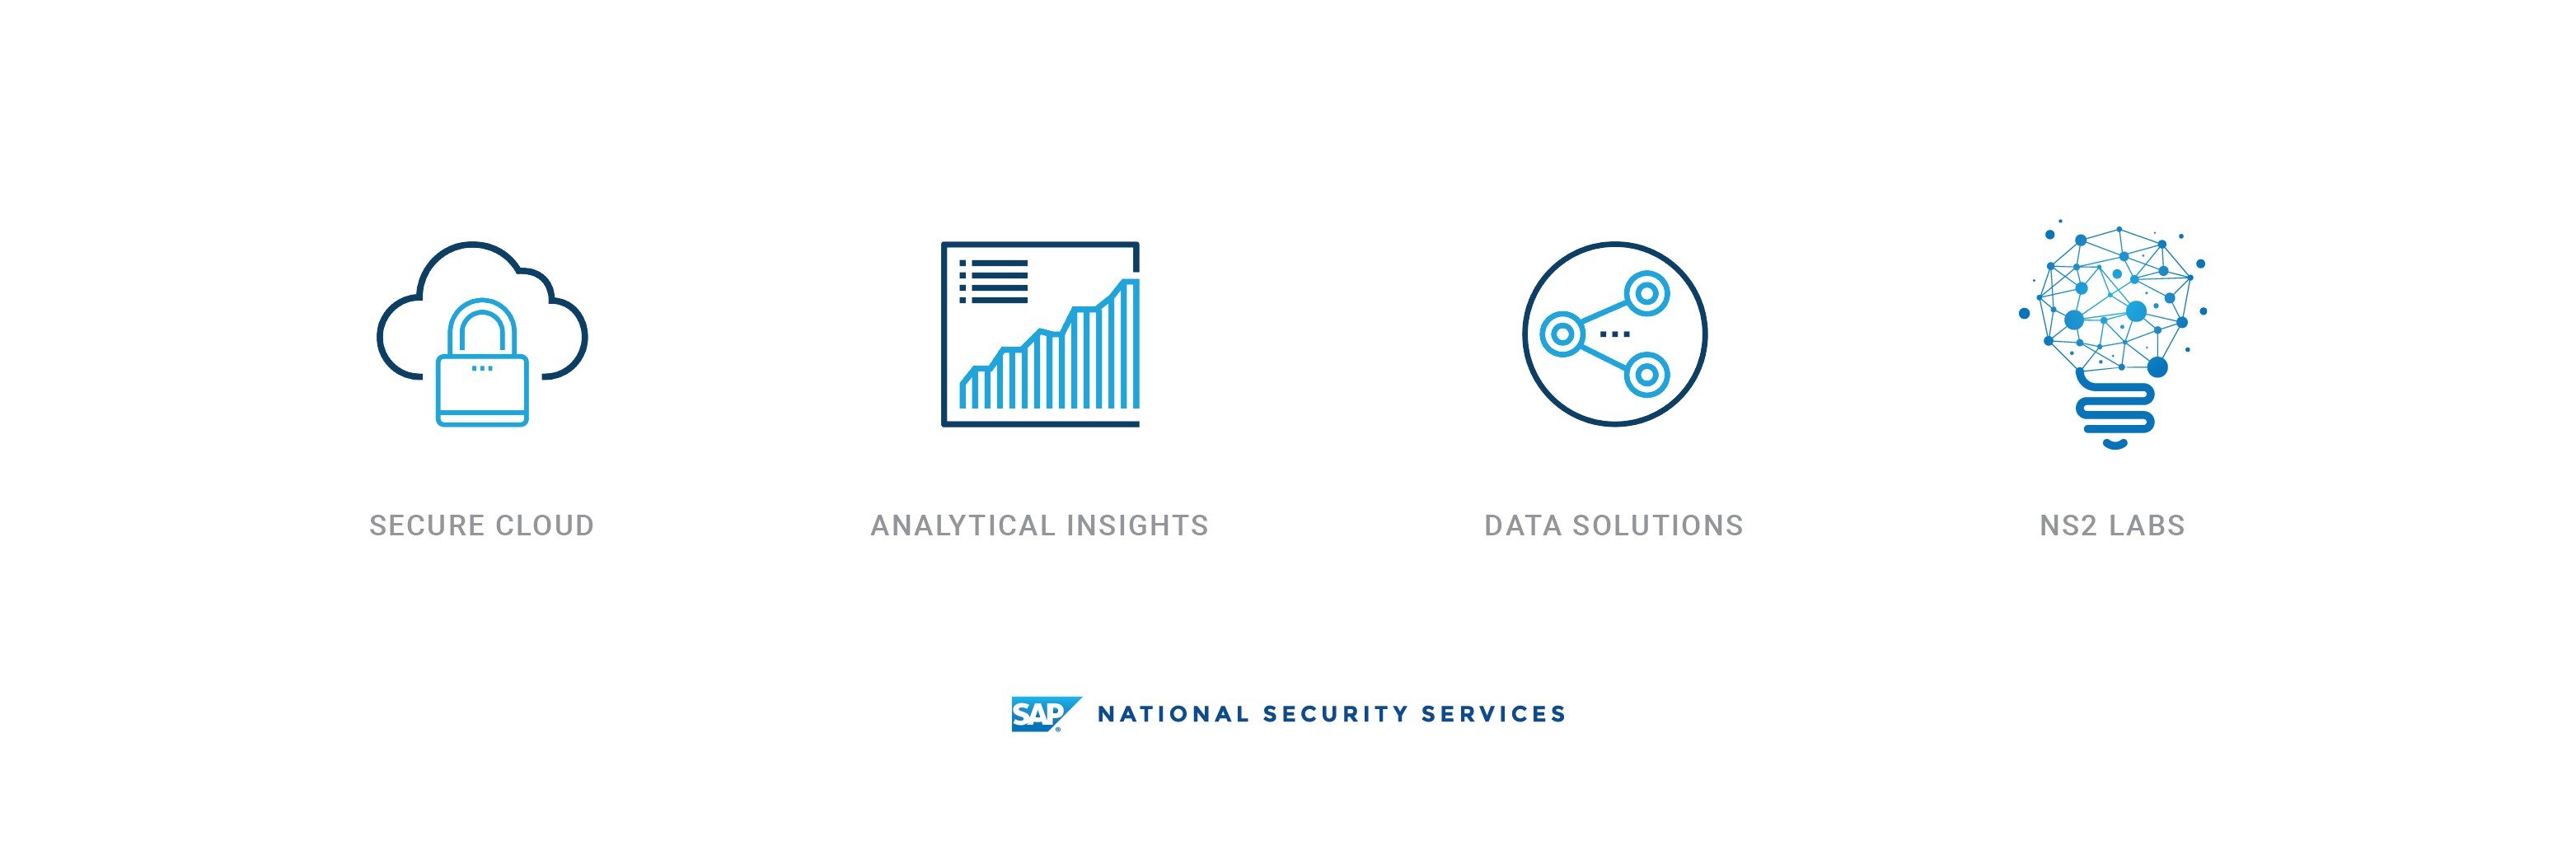 SAP National Security Services (SAP NS2) | LinkedIn